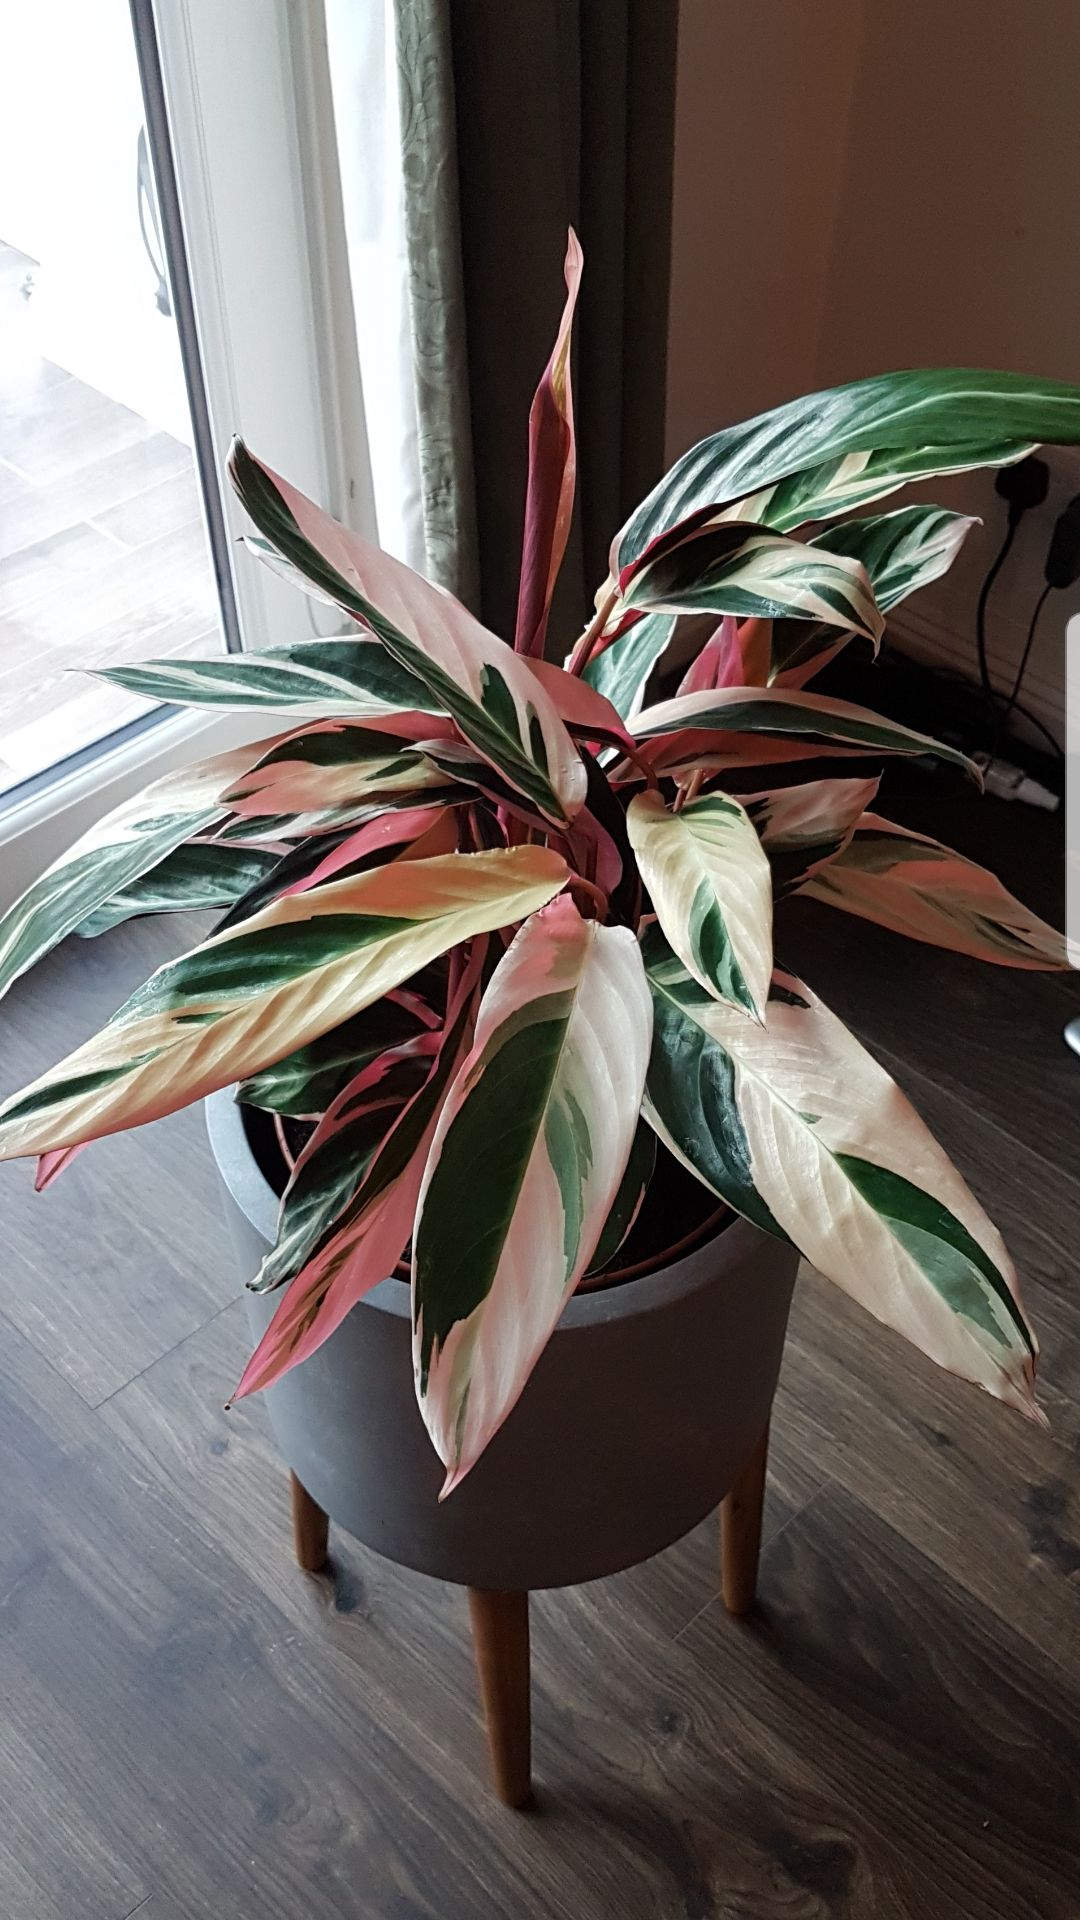 Got This Calathea Triostar For 12 From Homebase Any Advice To Keep It Alive Plants House Plants Decor Plant Decor